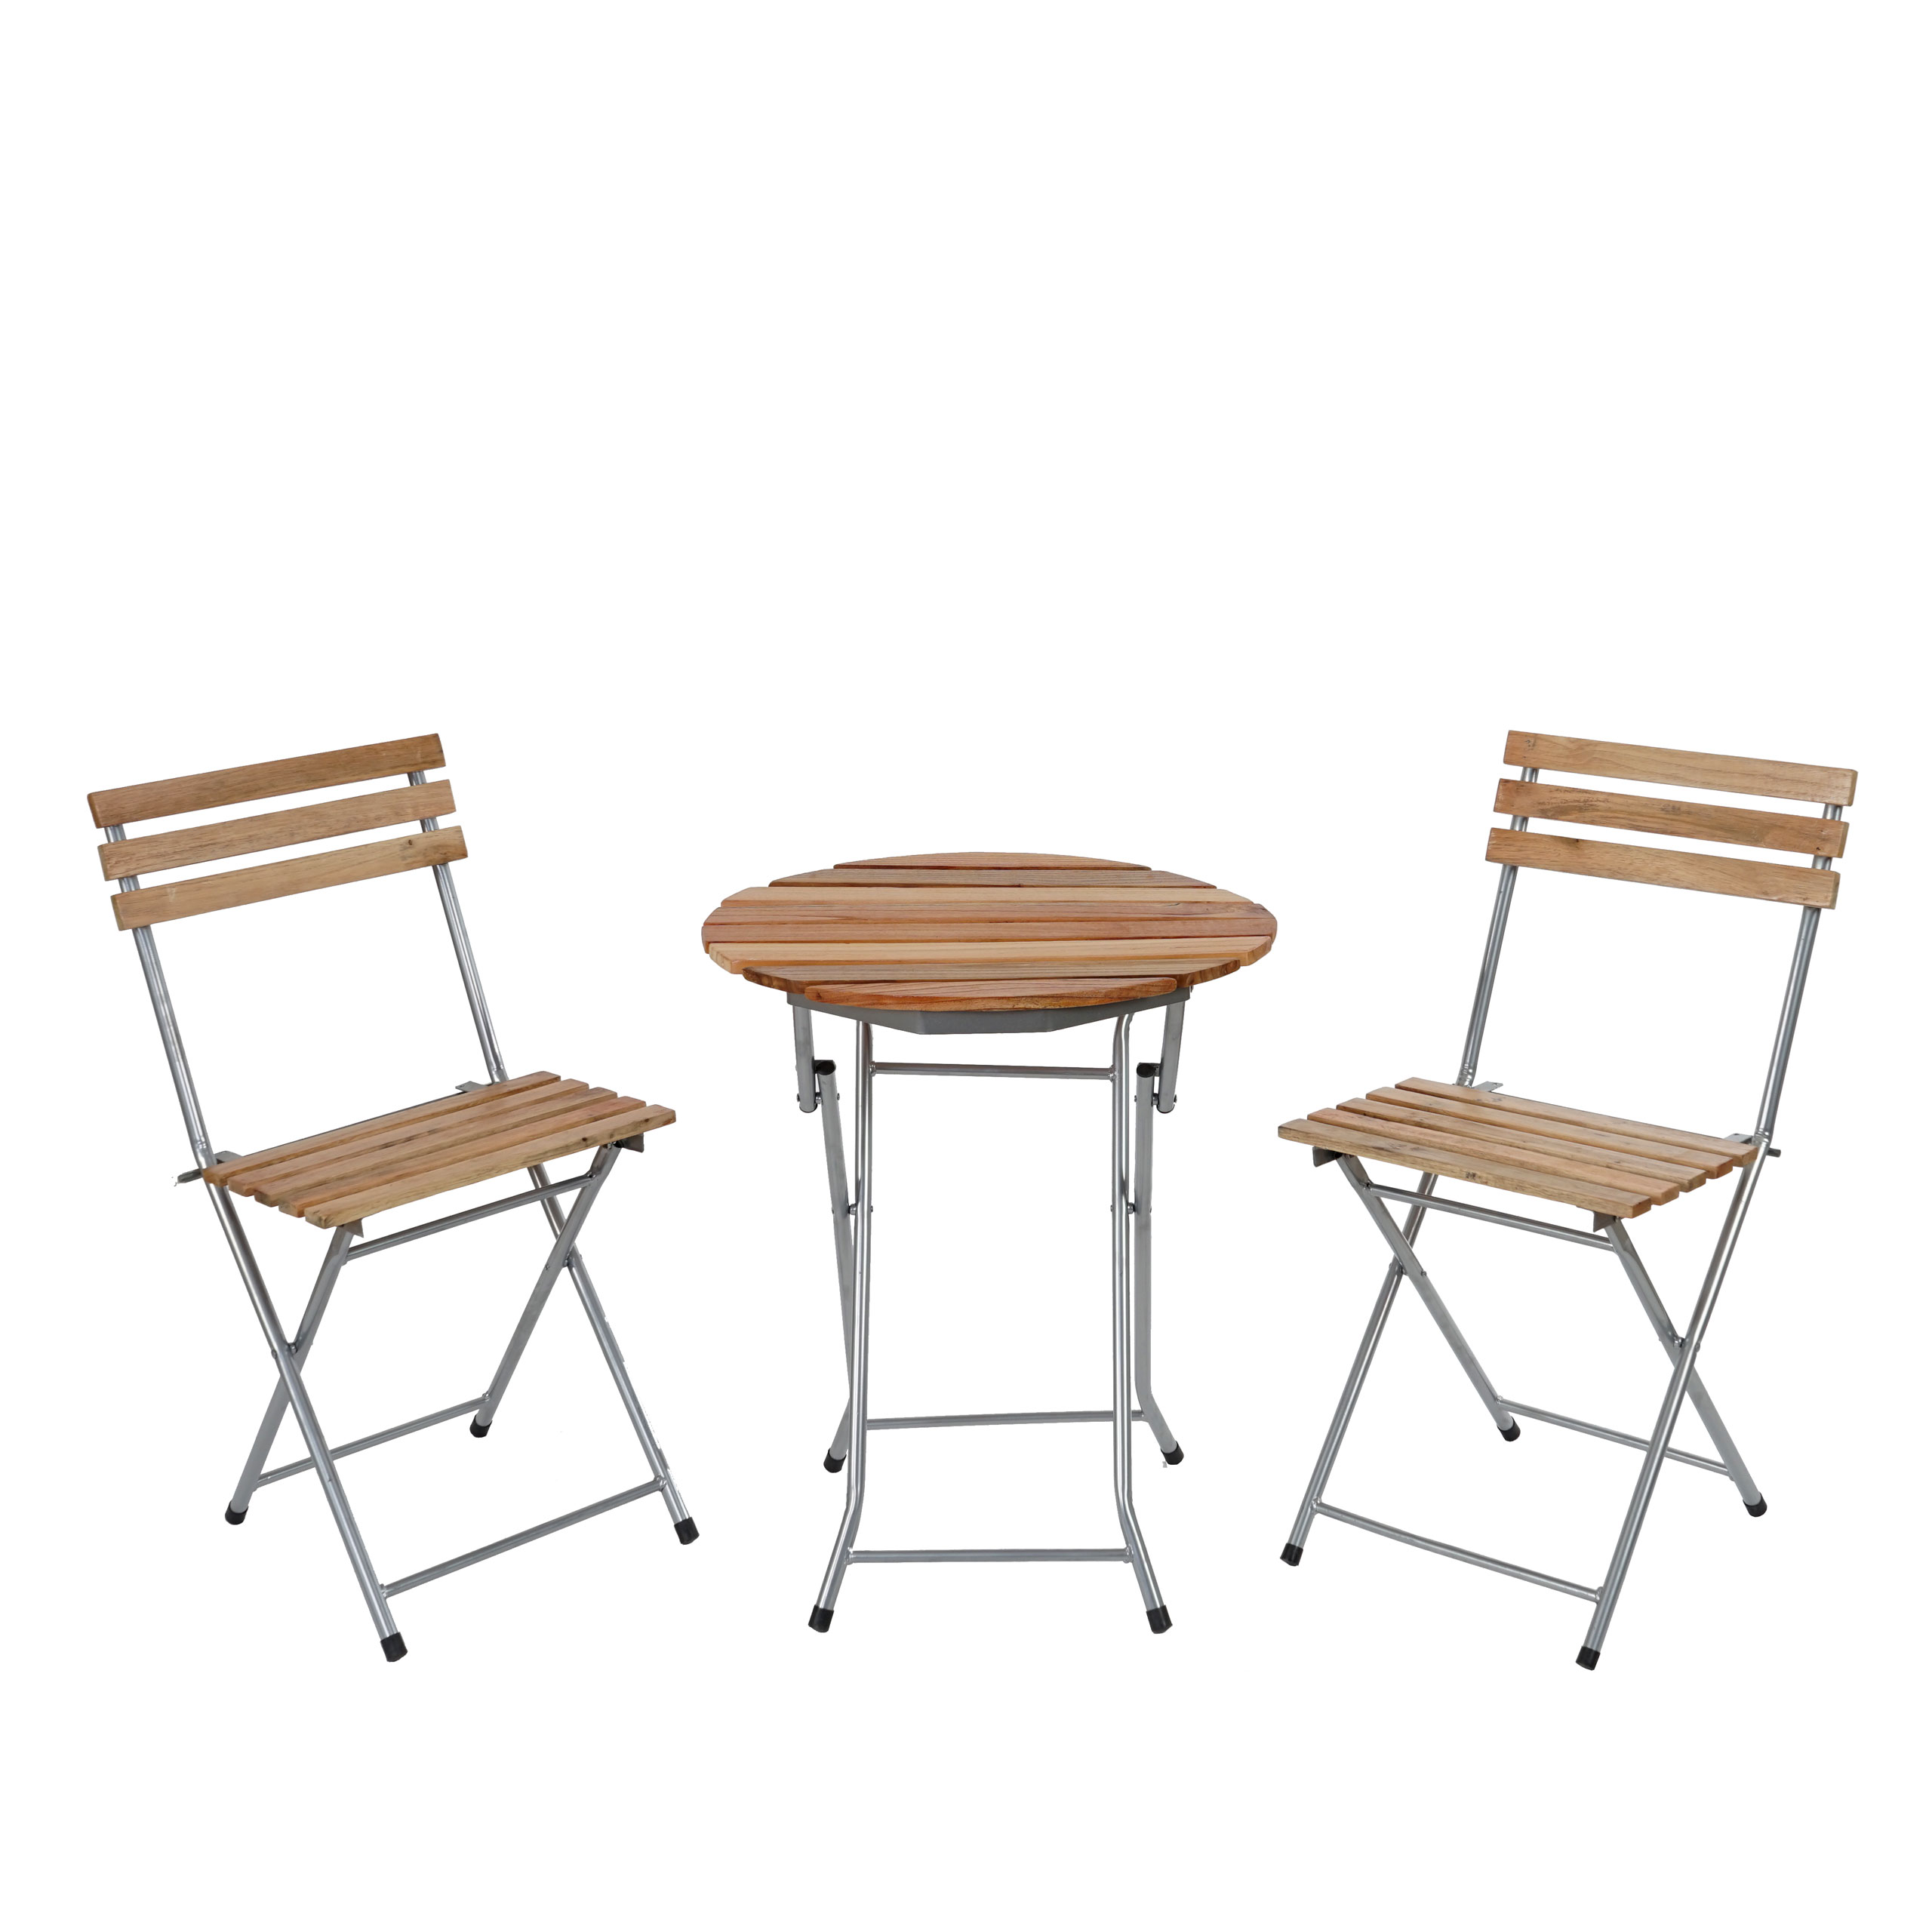 biergarten garnitur garmisch bistro set garten set tisch st hle ge lt ebay. Black Bedroom Furniture Sets. Home Design Ideas